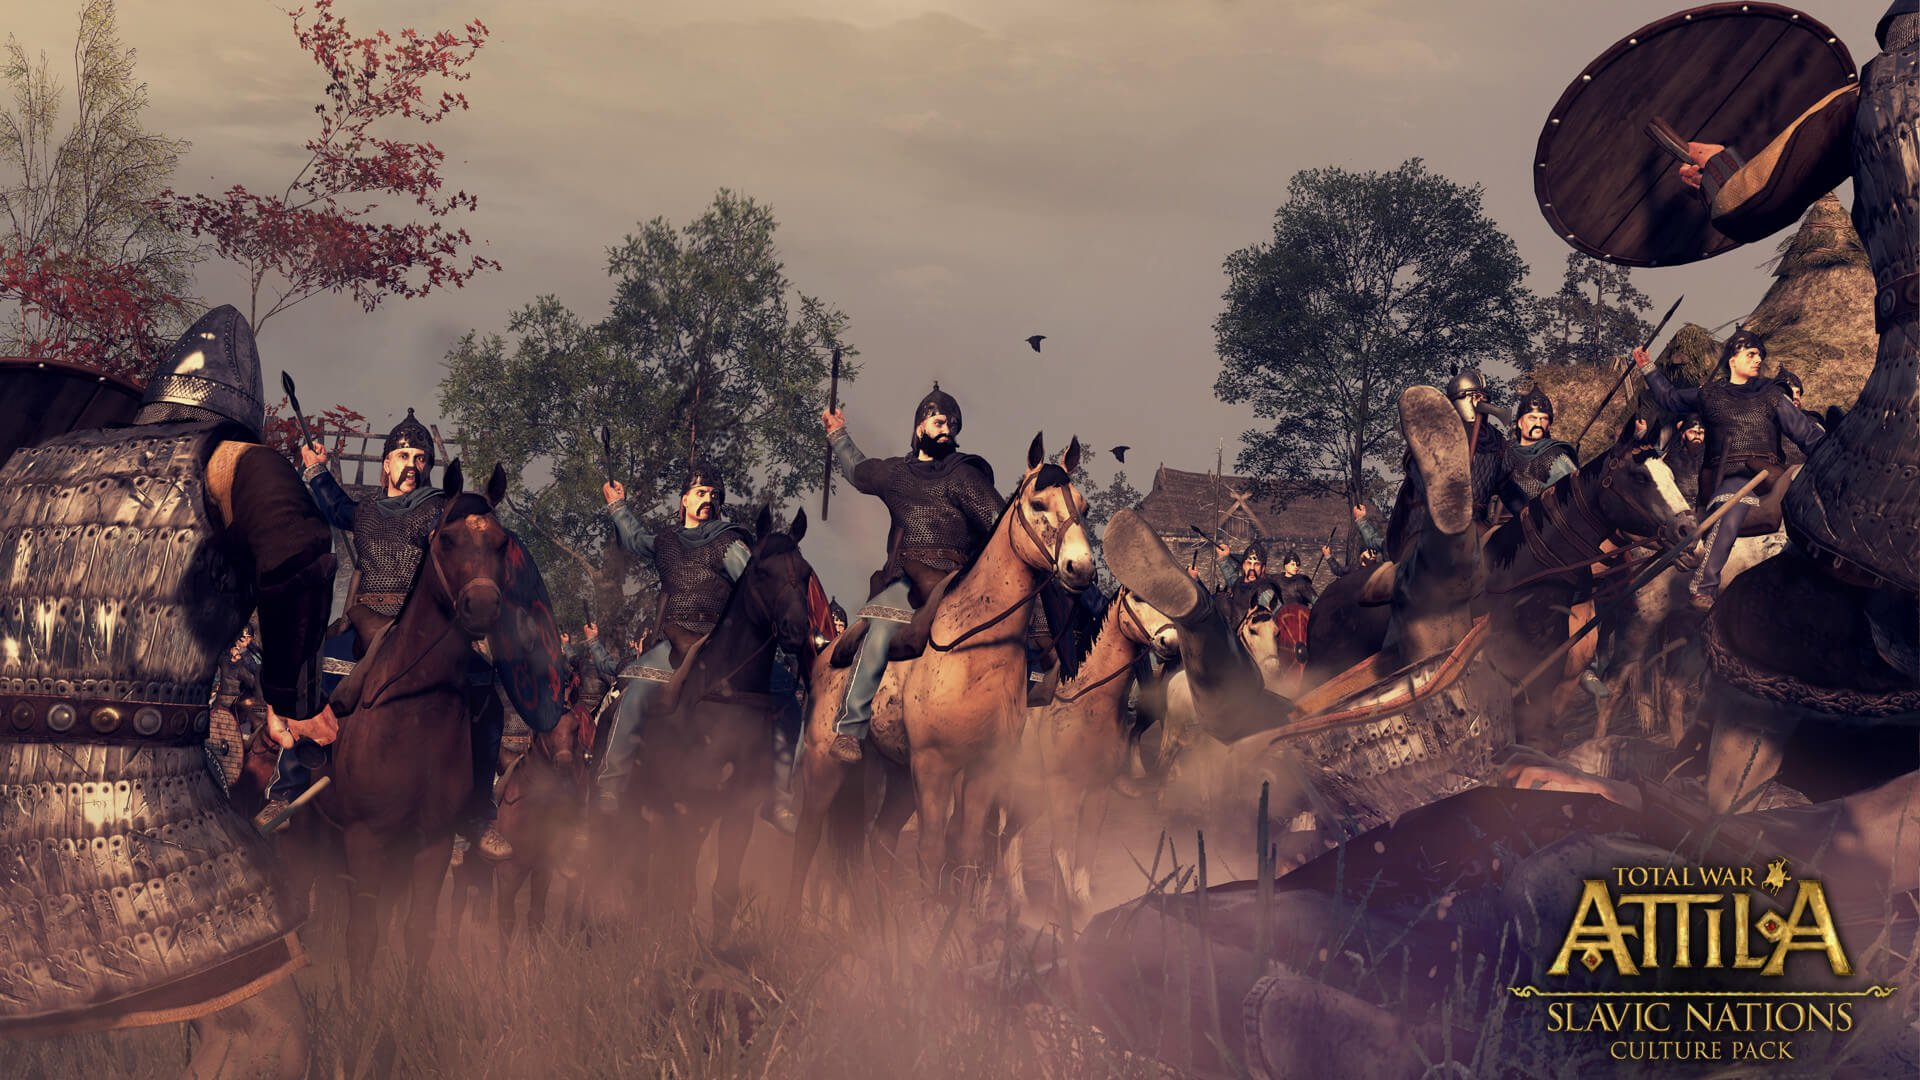 Total War: ATTILA - Slavic Nations Culture Pack Video